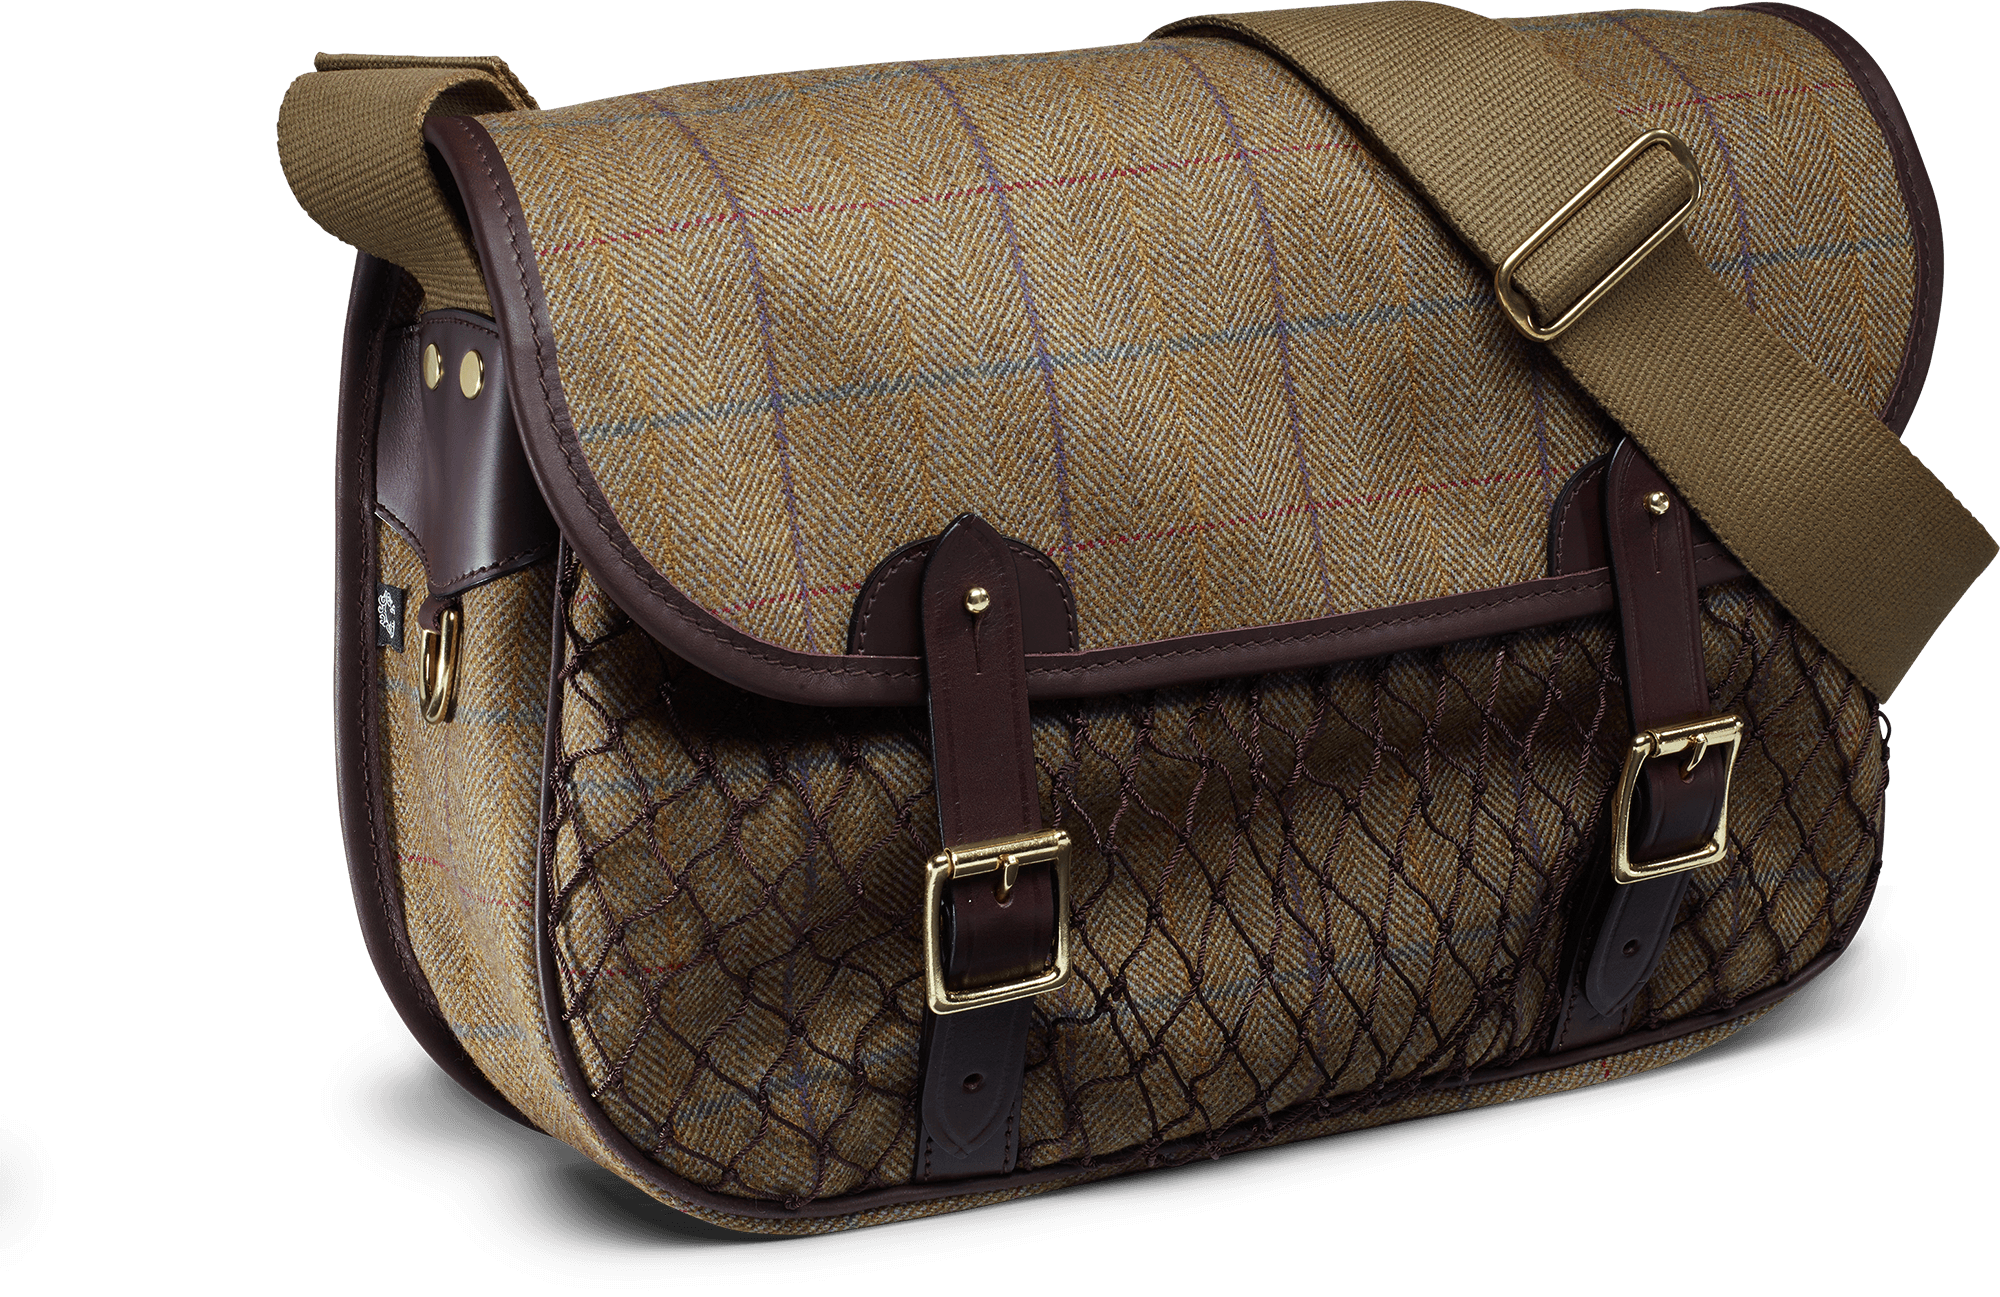 CROOTS Helmsley Netted Carryall, tweed, burgundy